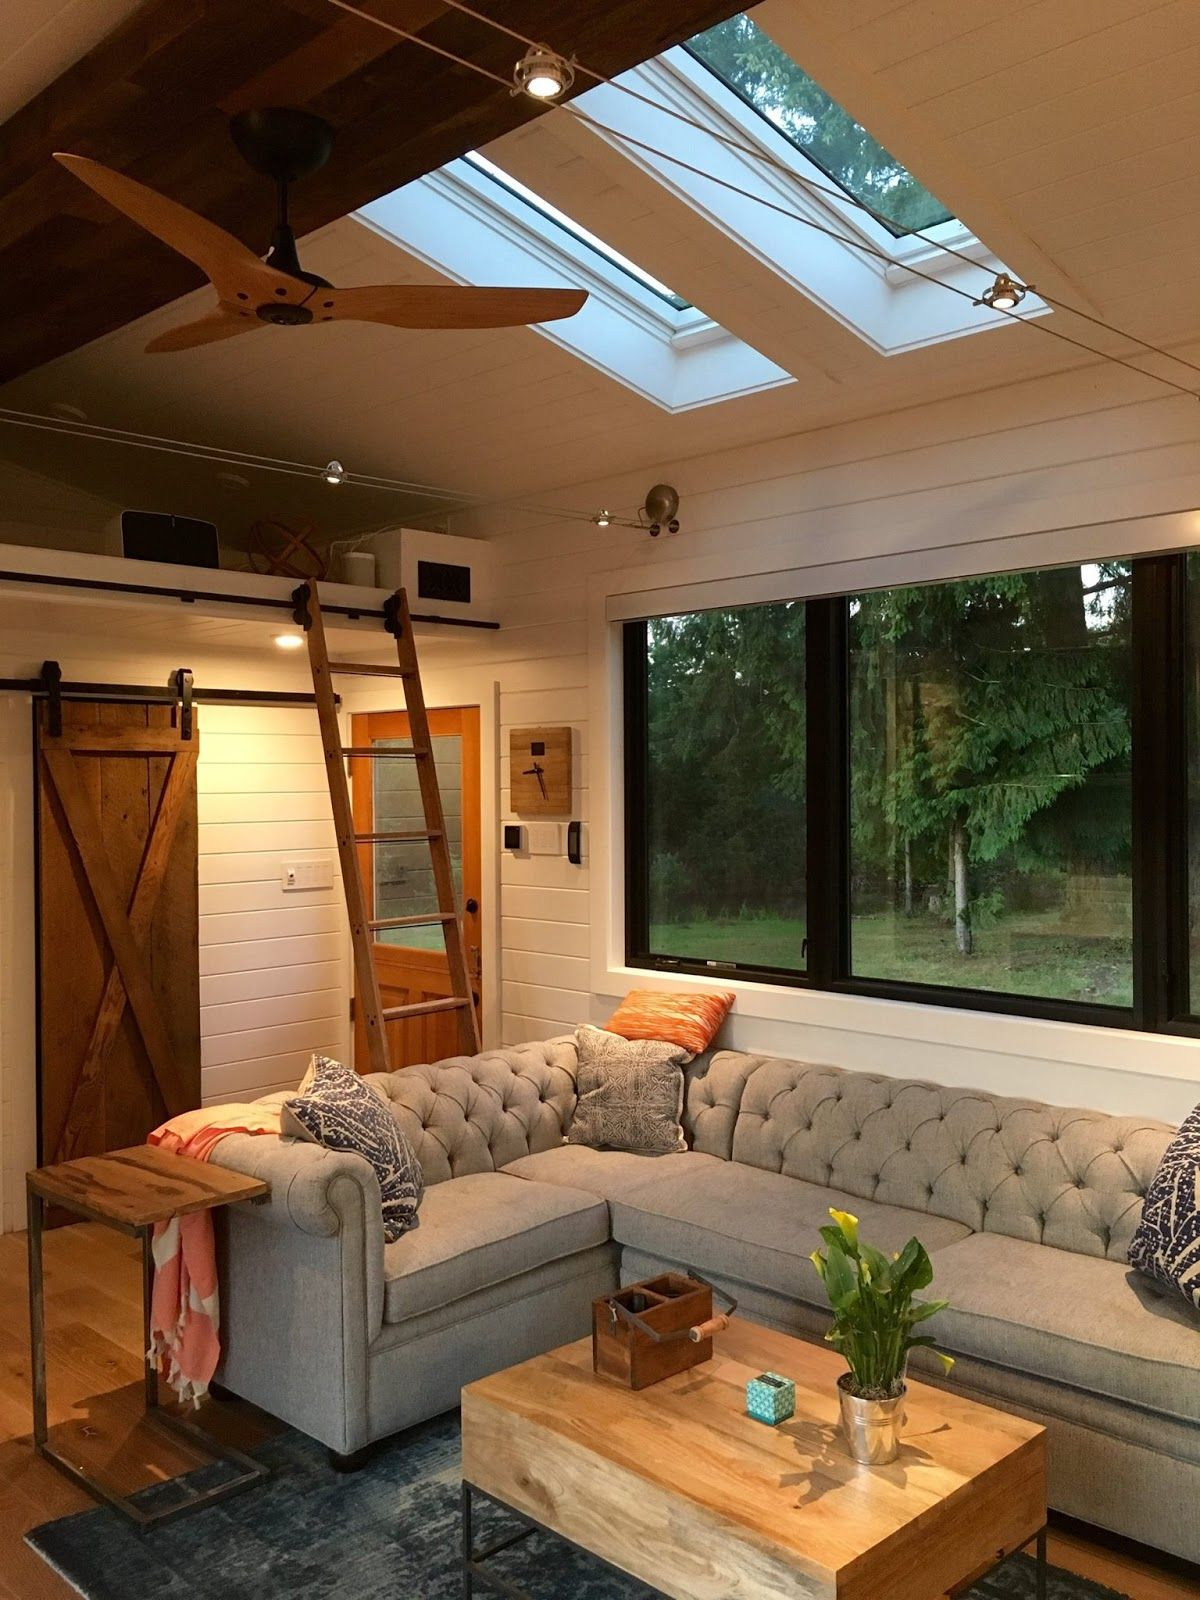 A stunning tiny house on wheels by Tiny Heirloom, called the